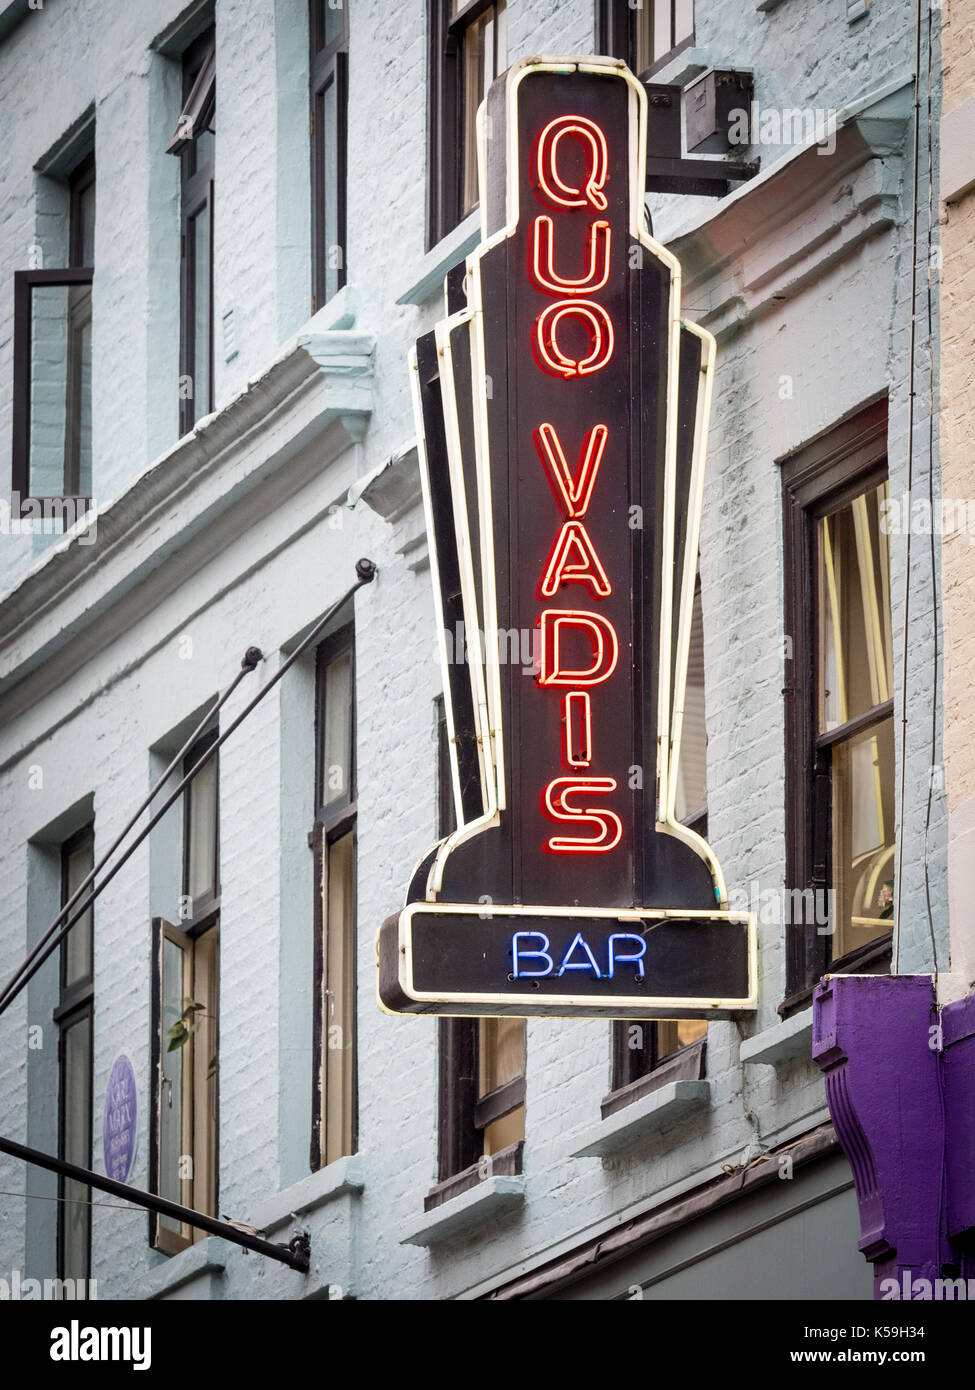 Quo Vadis Soho - Quo Vadis is a historic Soho restaurant and members' club in Dean Street, Soho. The building was once home to Karl Marx. - Stock Image